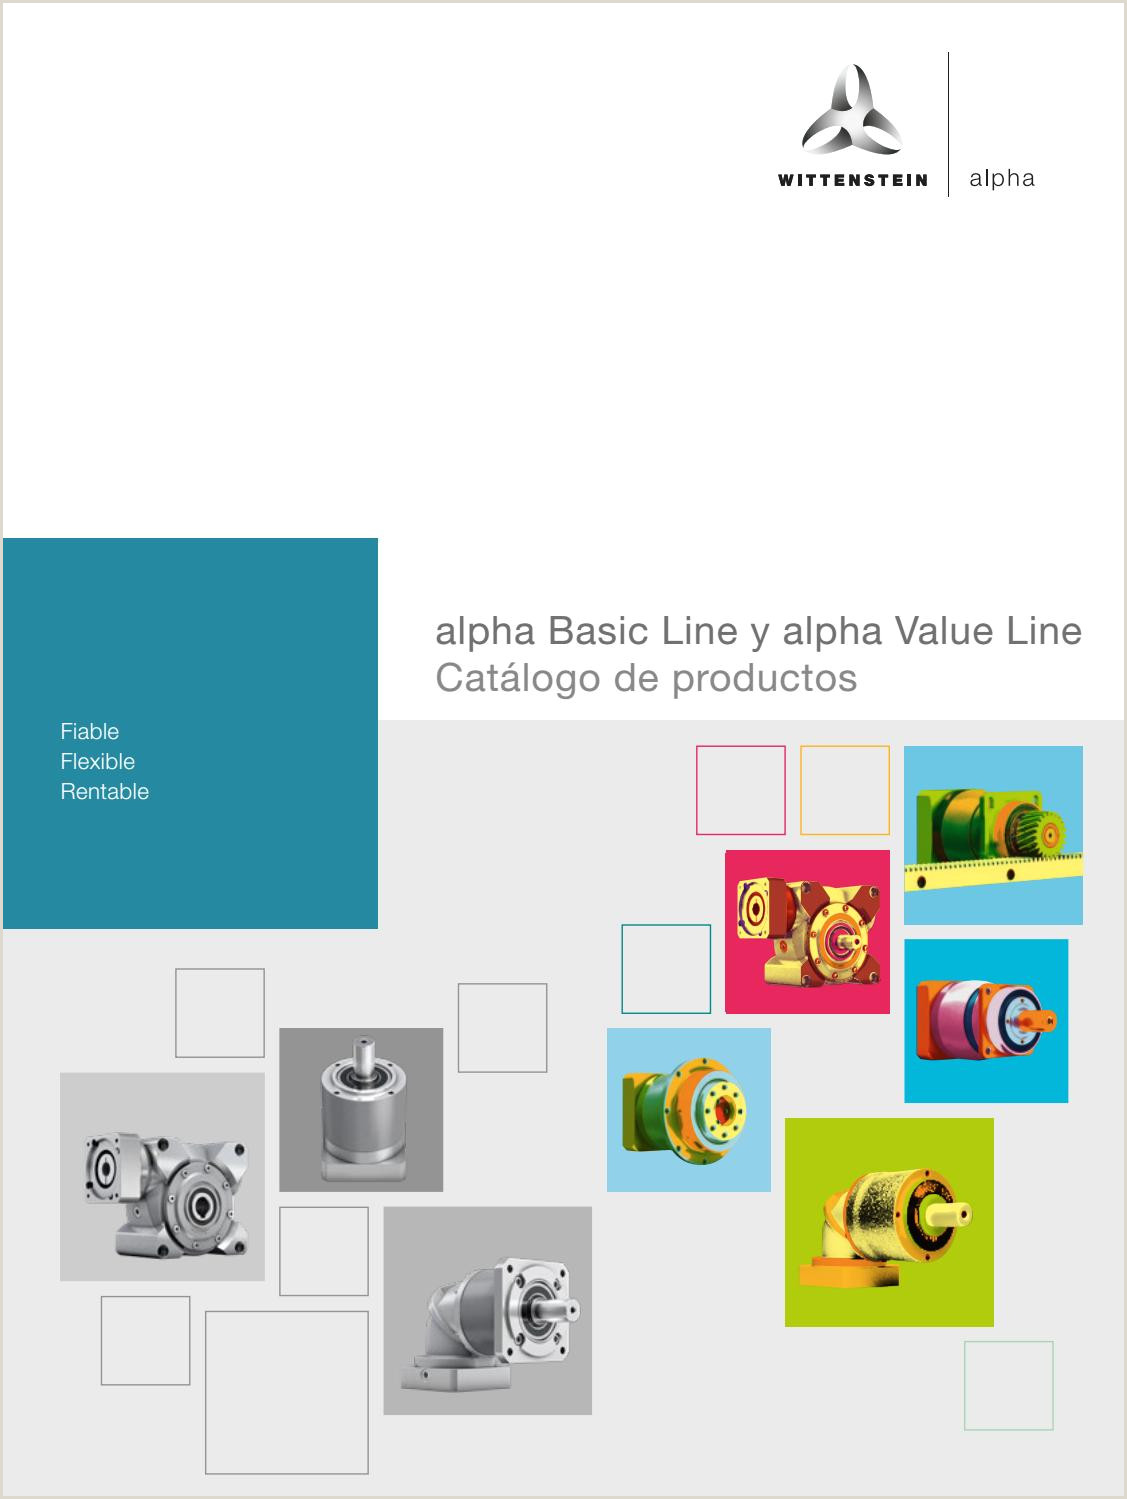 alpha Basic Line & alpha Value Line Spanish version by